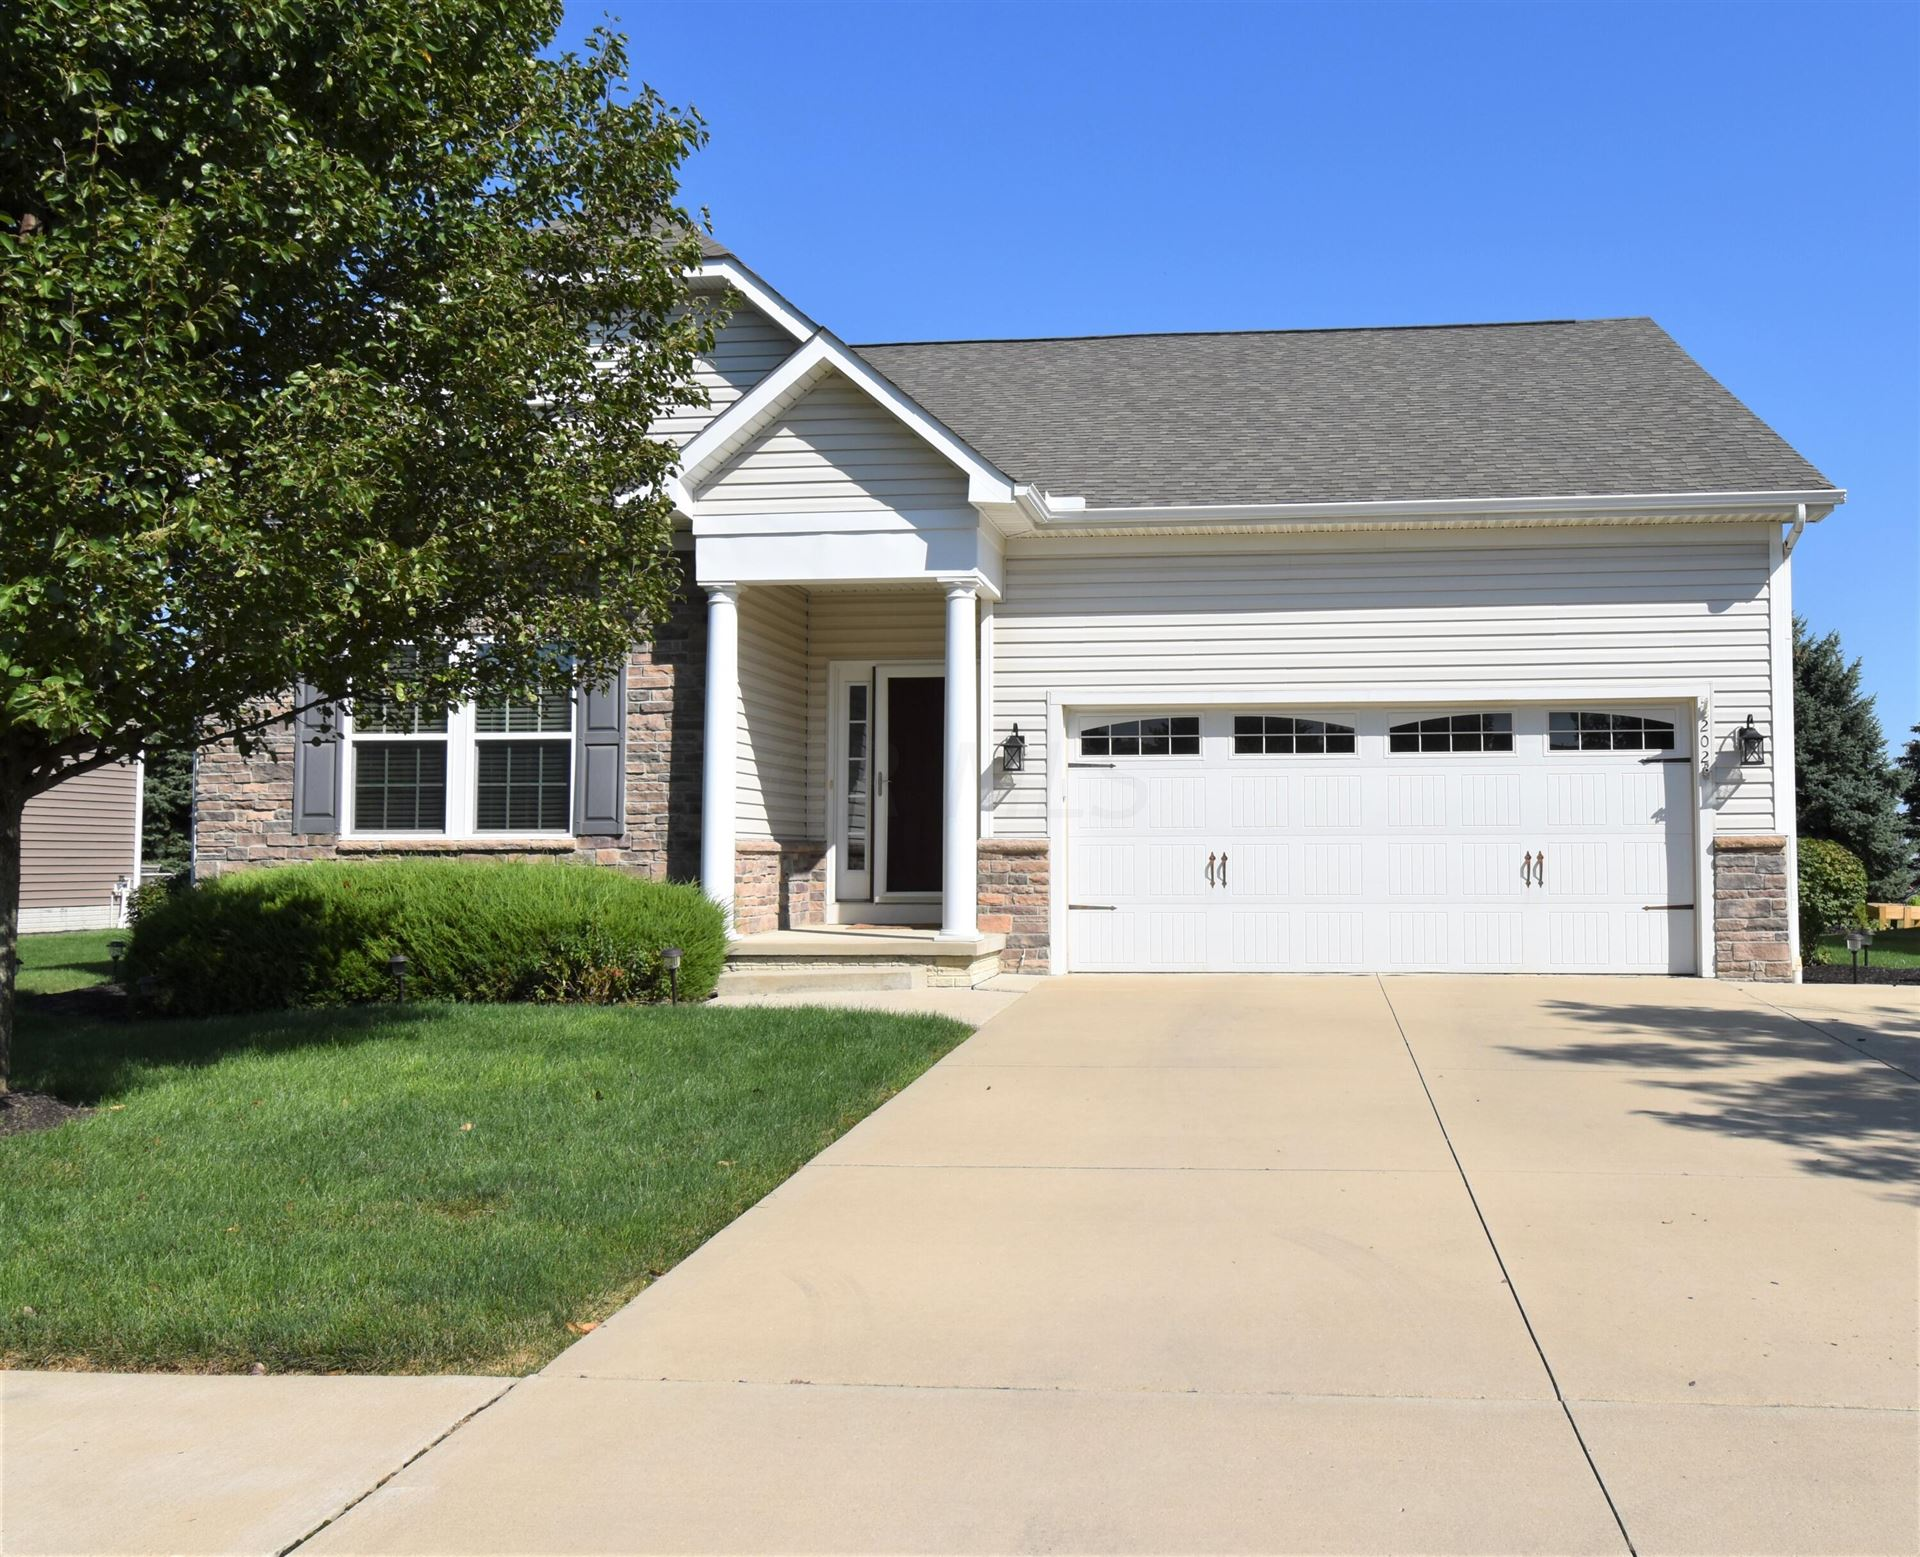 Photo of 202 Diverston Way, Delaware, OH 43015 (MLS # 221037702)